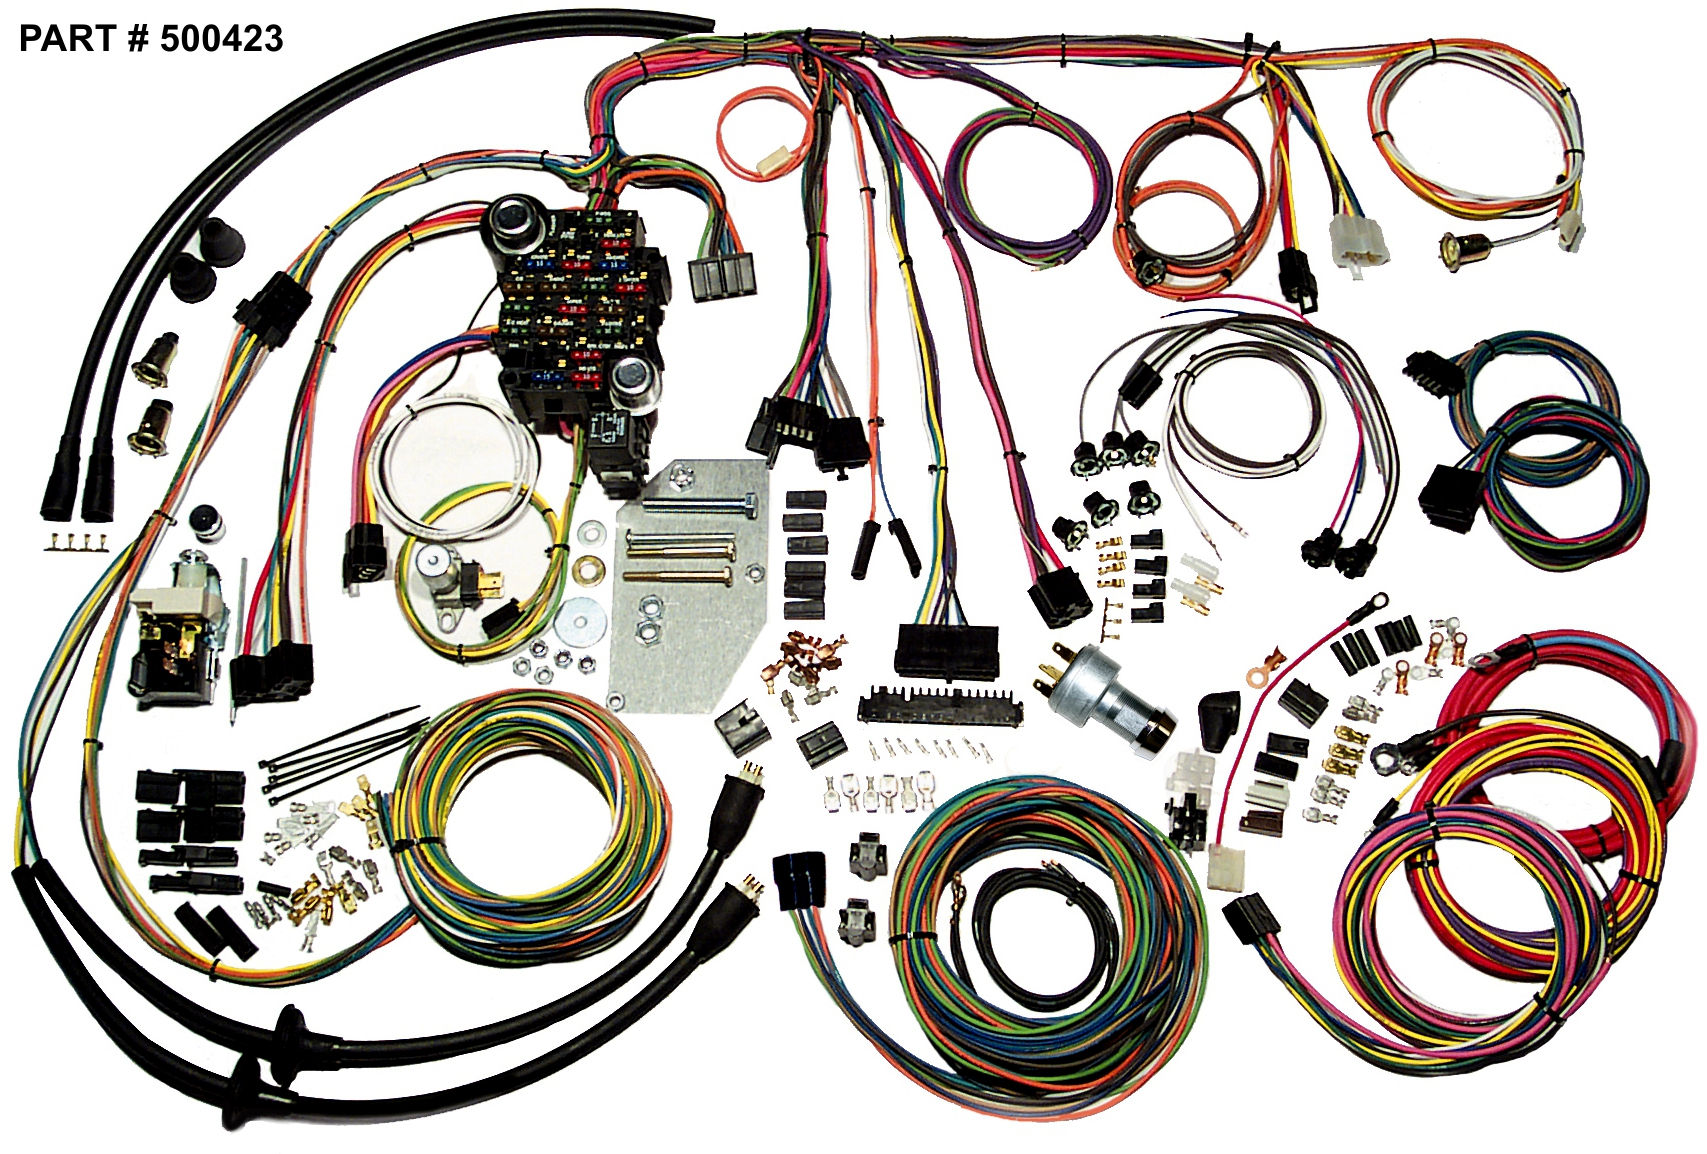 Diagram Wiring Harness Kits For Cars Old - Wiring Diagram Go on universal exhaust kit, universal grille kit, universal intercooler kit, universal bracket kit, universal aircraft harness kit, universal clutch kit, universal horn kit, universal headlight kit, universal gasket kit,